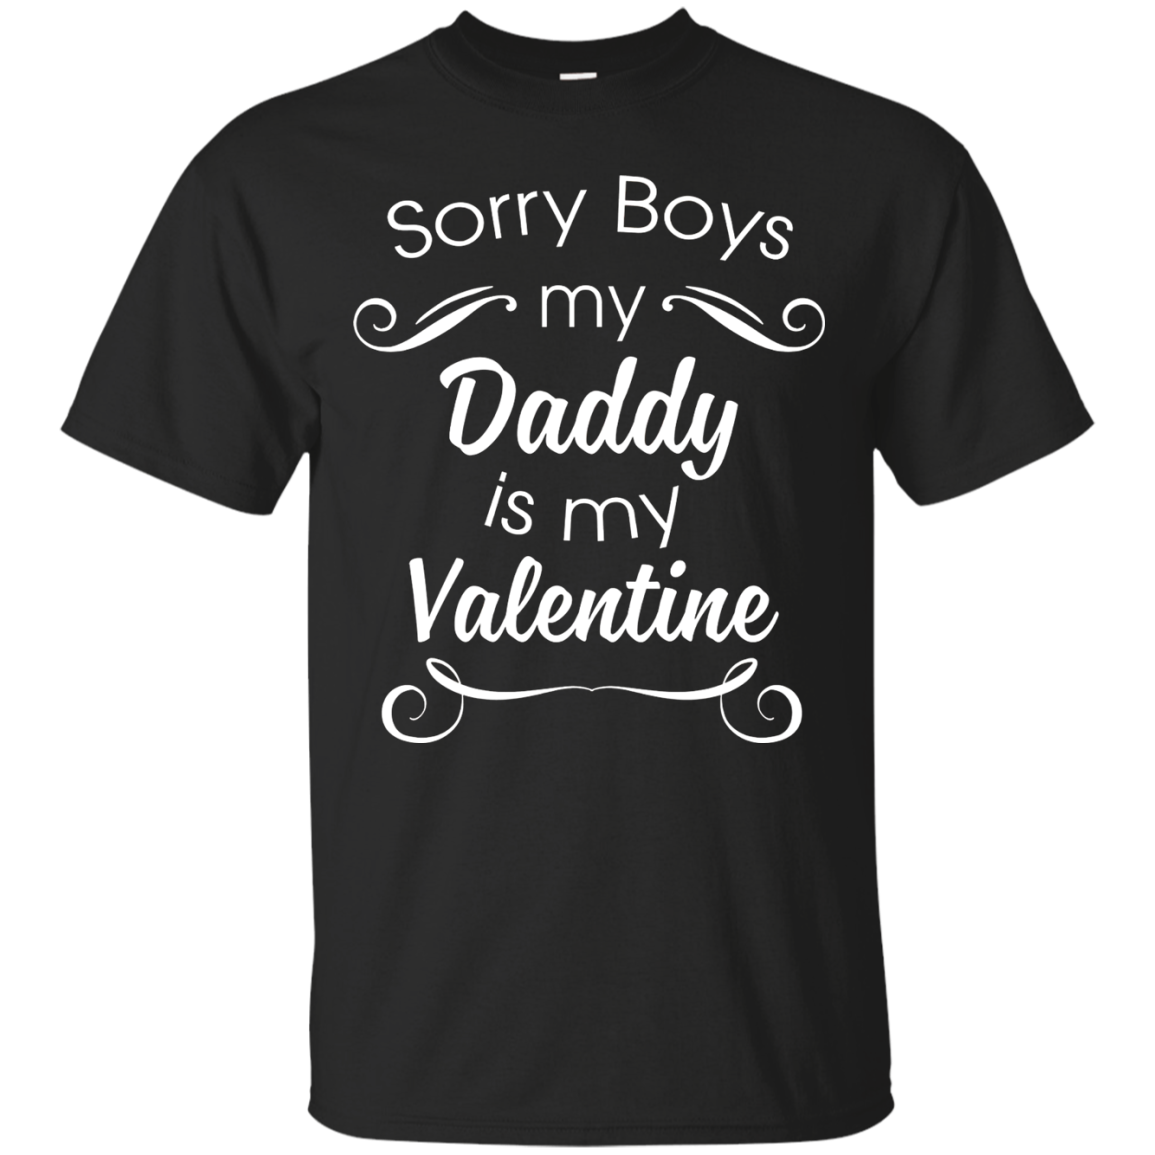 Sorry Boys Daddy Is My Valentine Cute Valentine S Day Shirt Funny